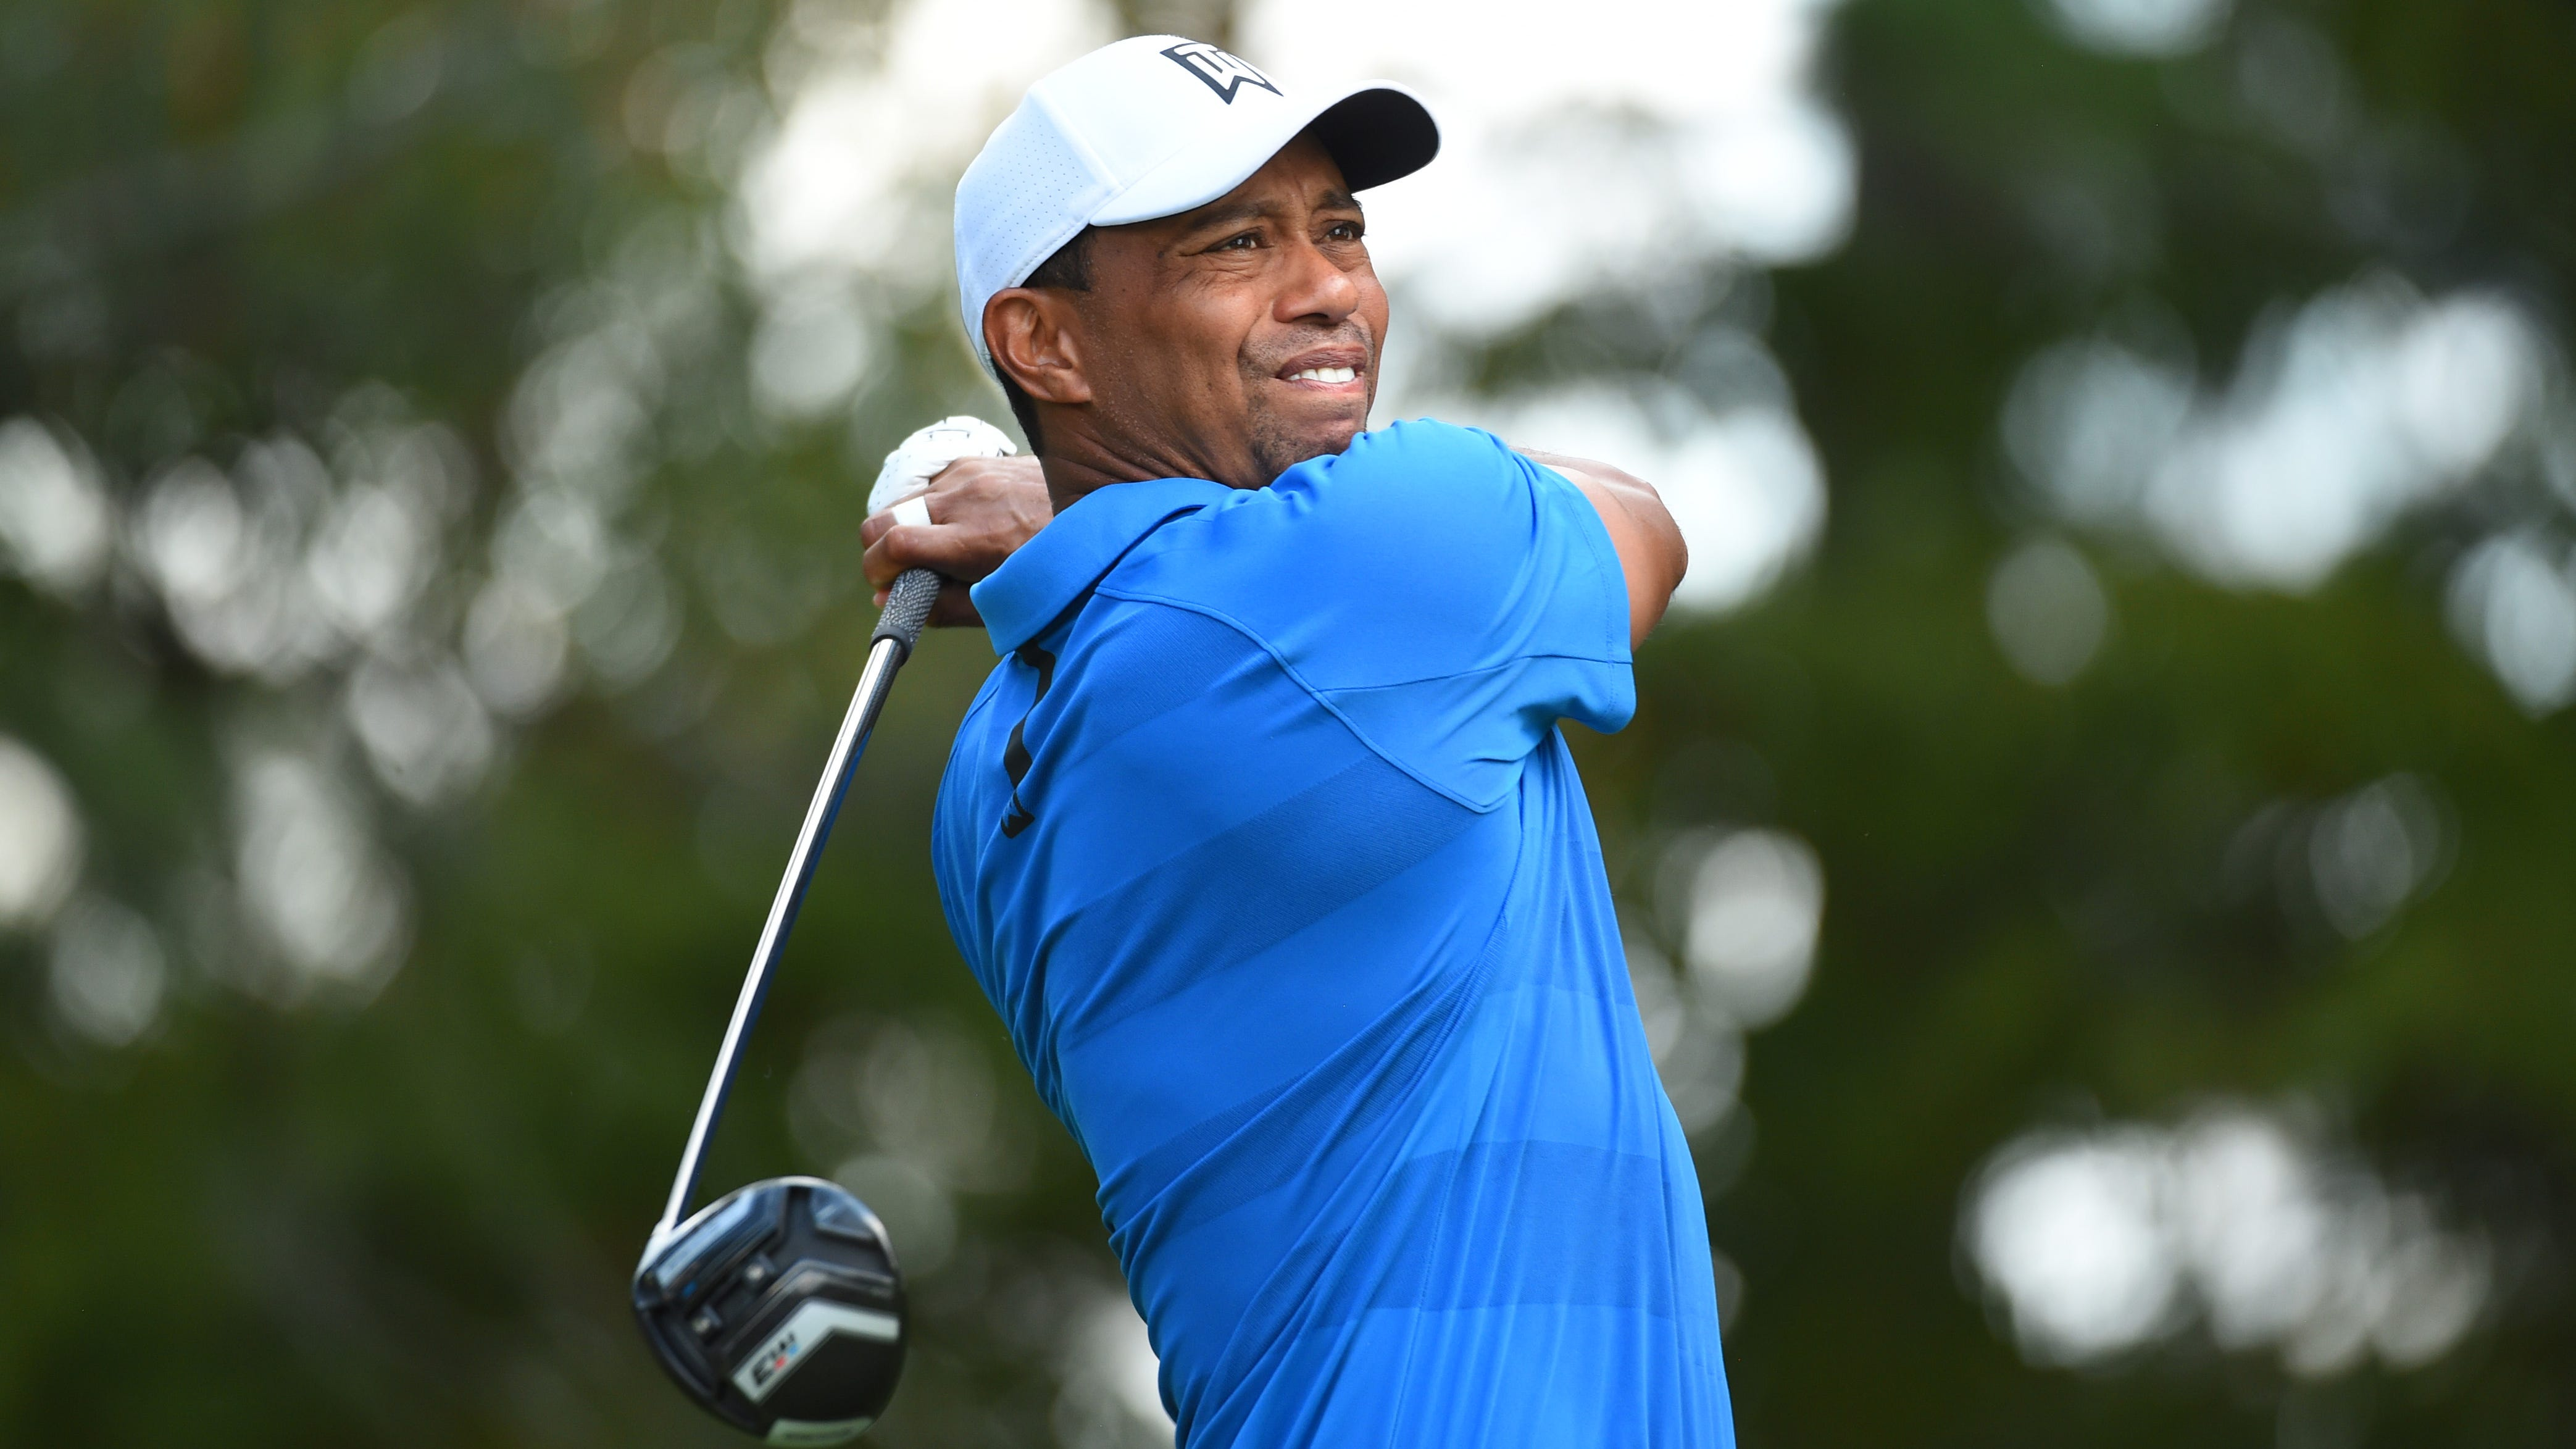 Tiger Woods has a shot to win the FedExCup, but he'll need some others to falter on Sunday to help make it happen.